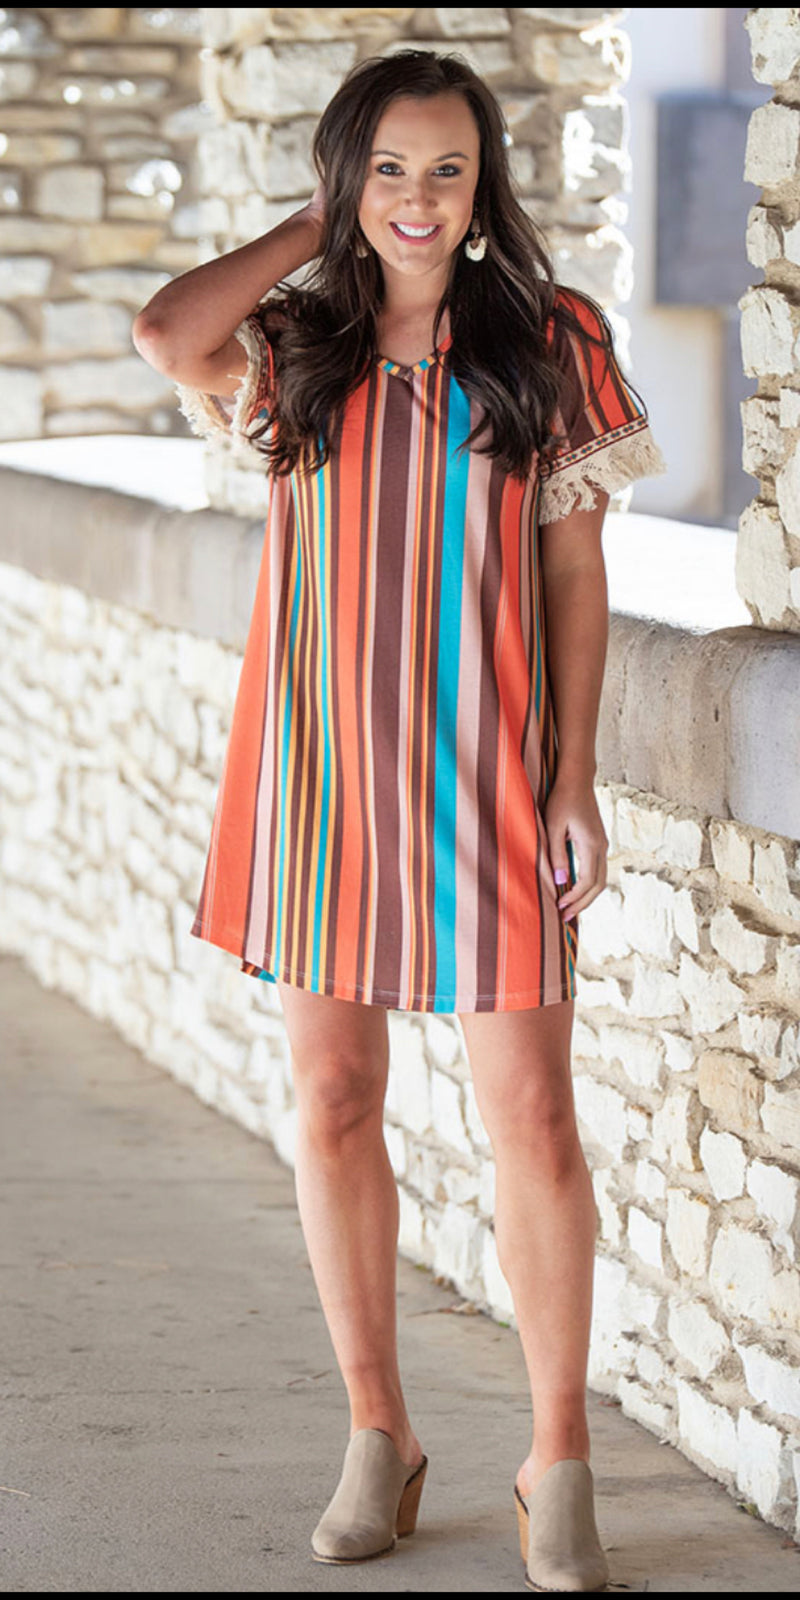 Bali Boho Serape Tunic Dress -Also in Plus Size